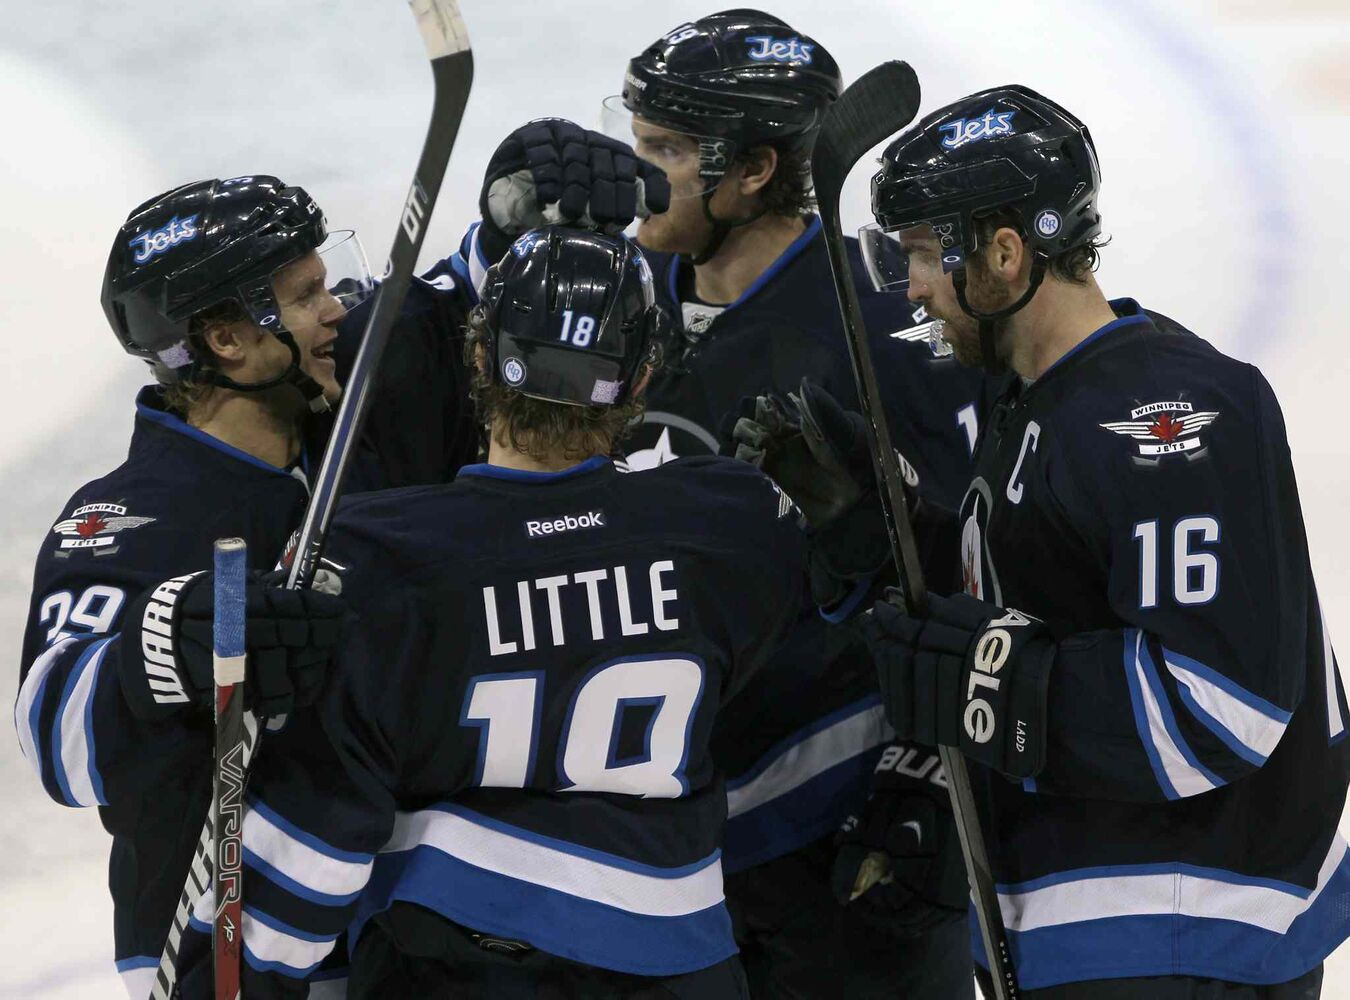 Winnipeg Jets (from left) Tobias Enstrom, Bryan Little, Jim Slater and Andrew Ladd celebrate the team's late empty-net goal in the third period, giving the Jets a 5-3 win over the Los Angeles Kings.